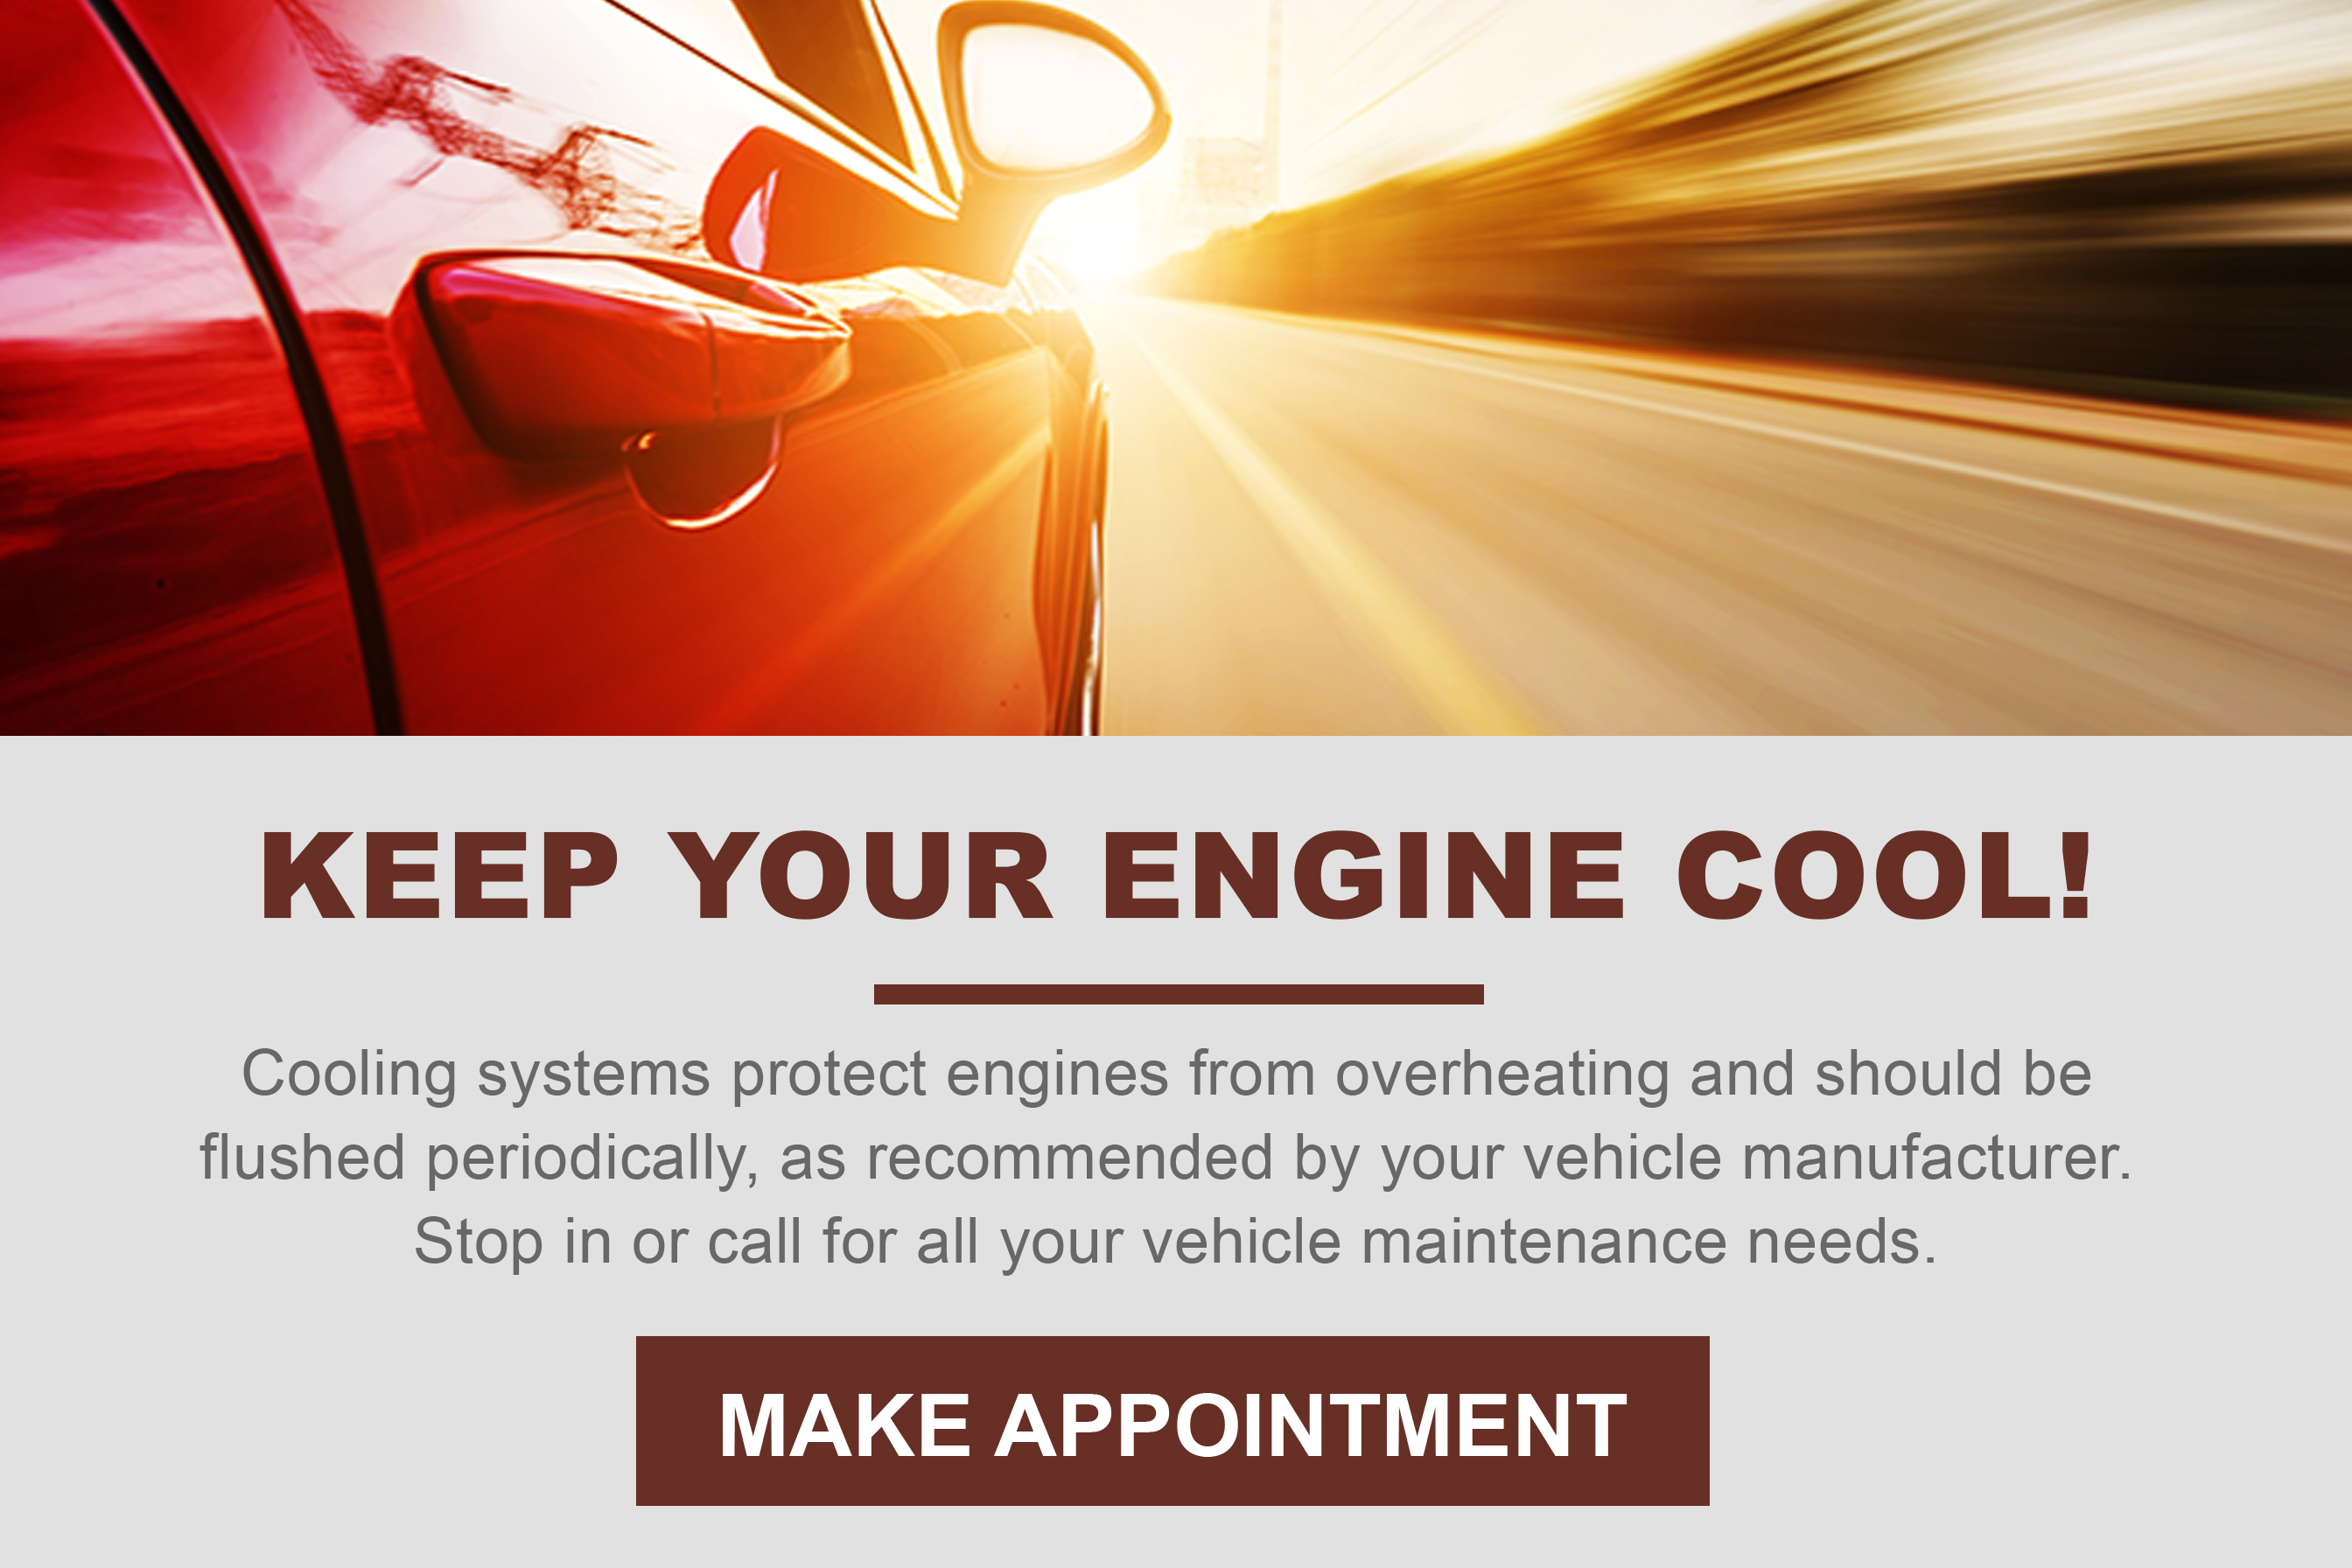 Keep Your Engine Cool